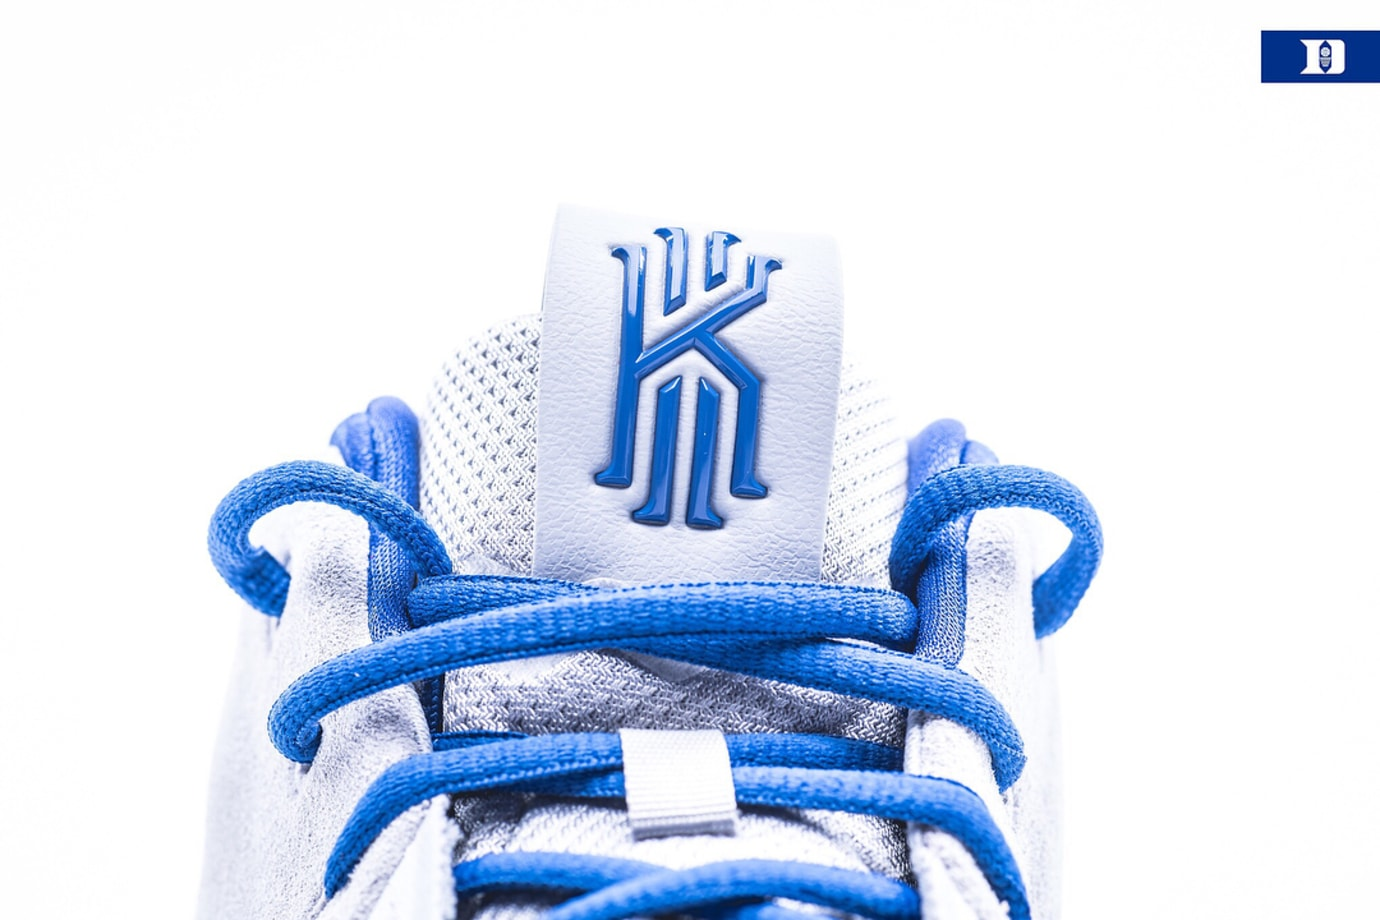 Duke Nike Kyrie 4 PE Tongue